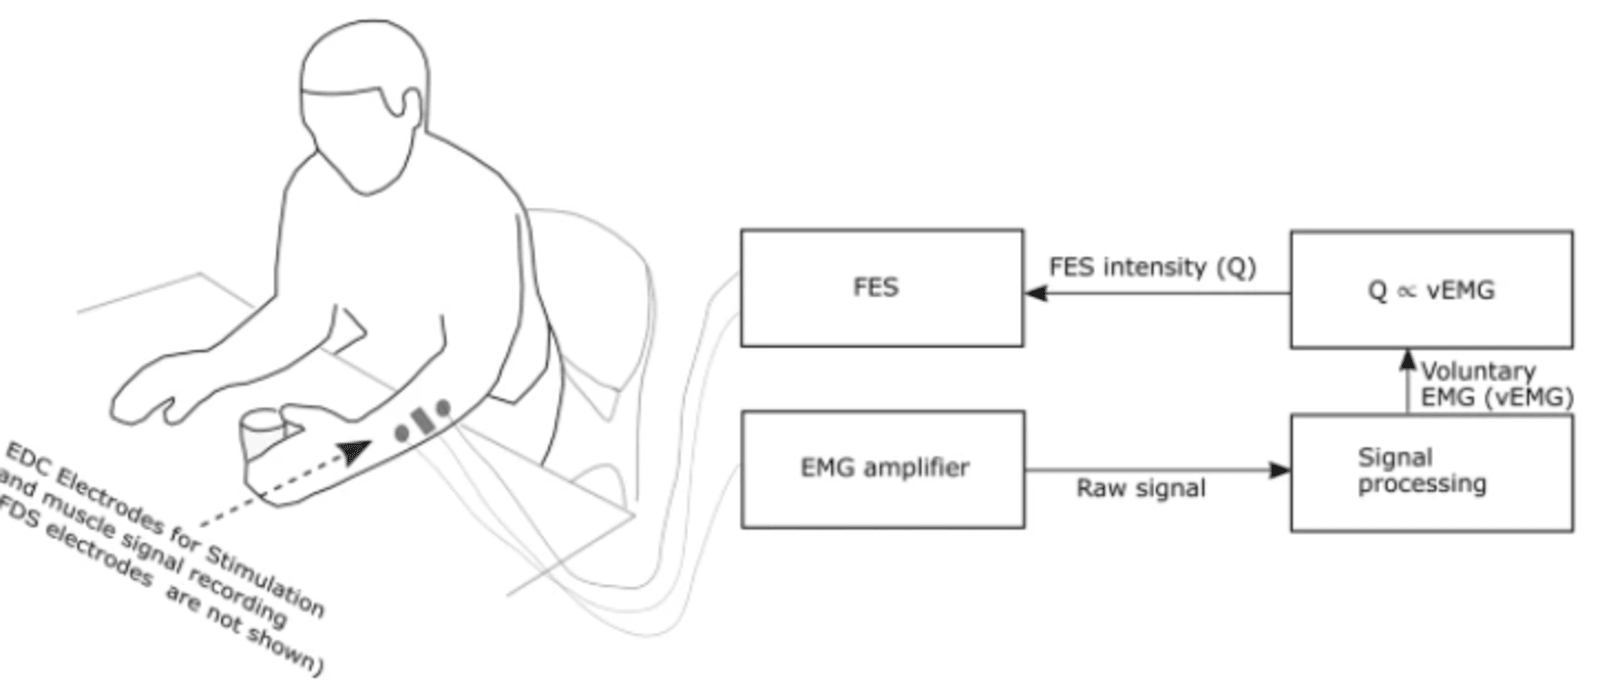 Active Functional Electrical Stimulation (Active FES) system developed with support from SMSR